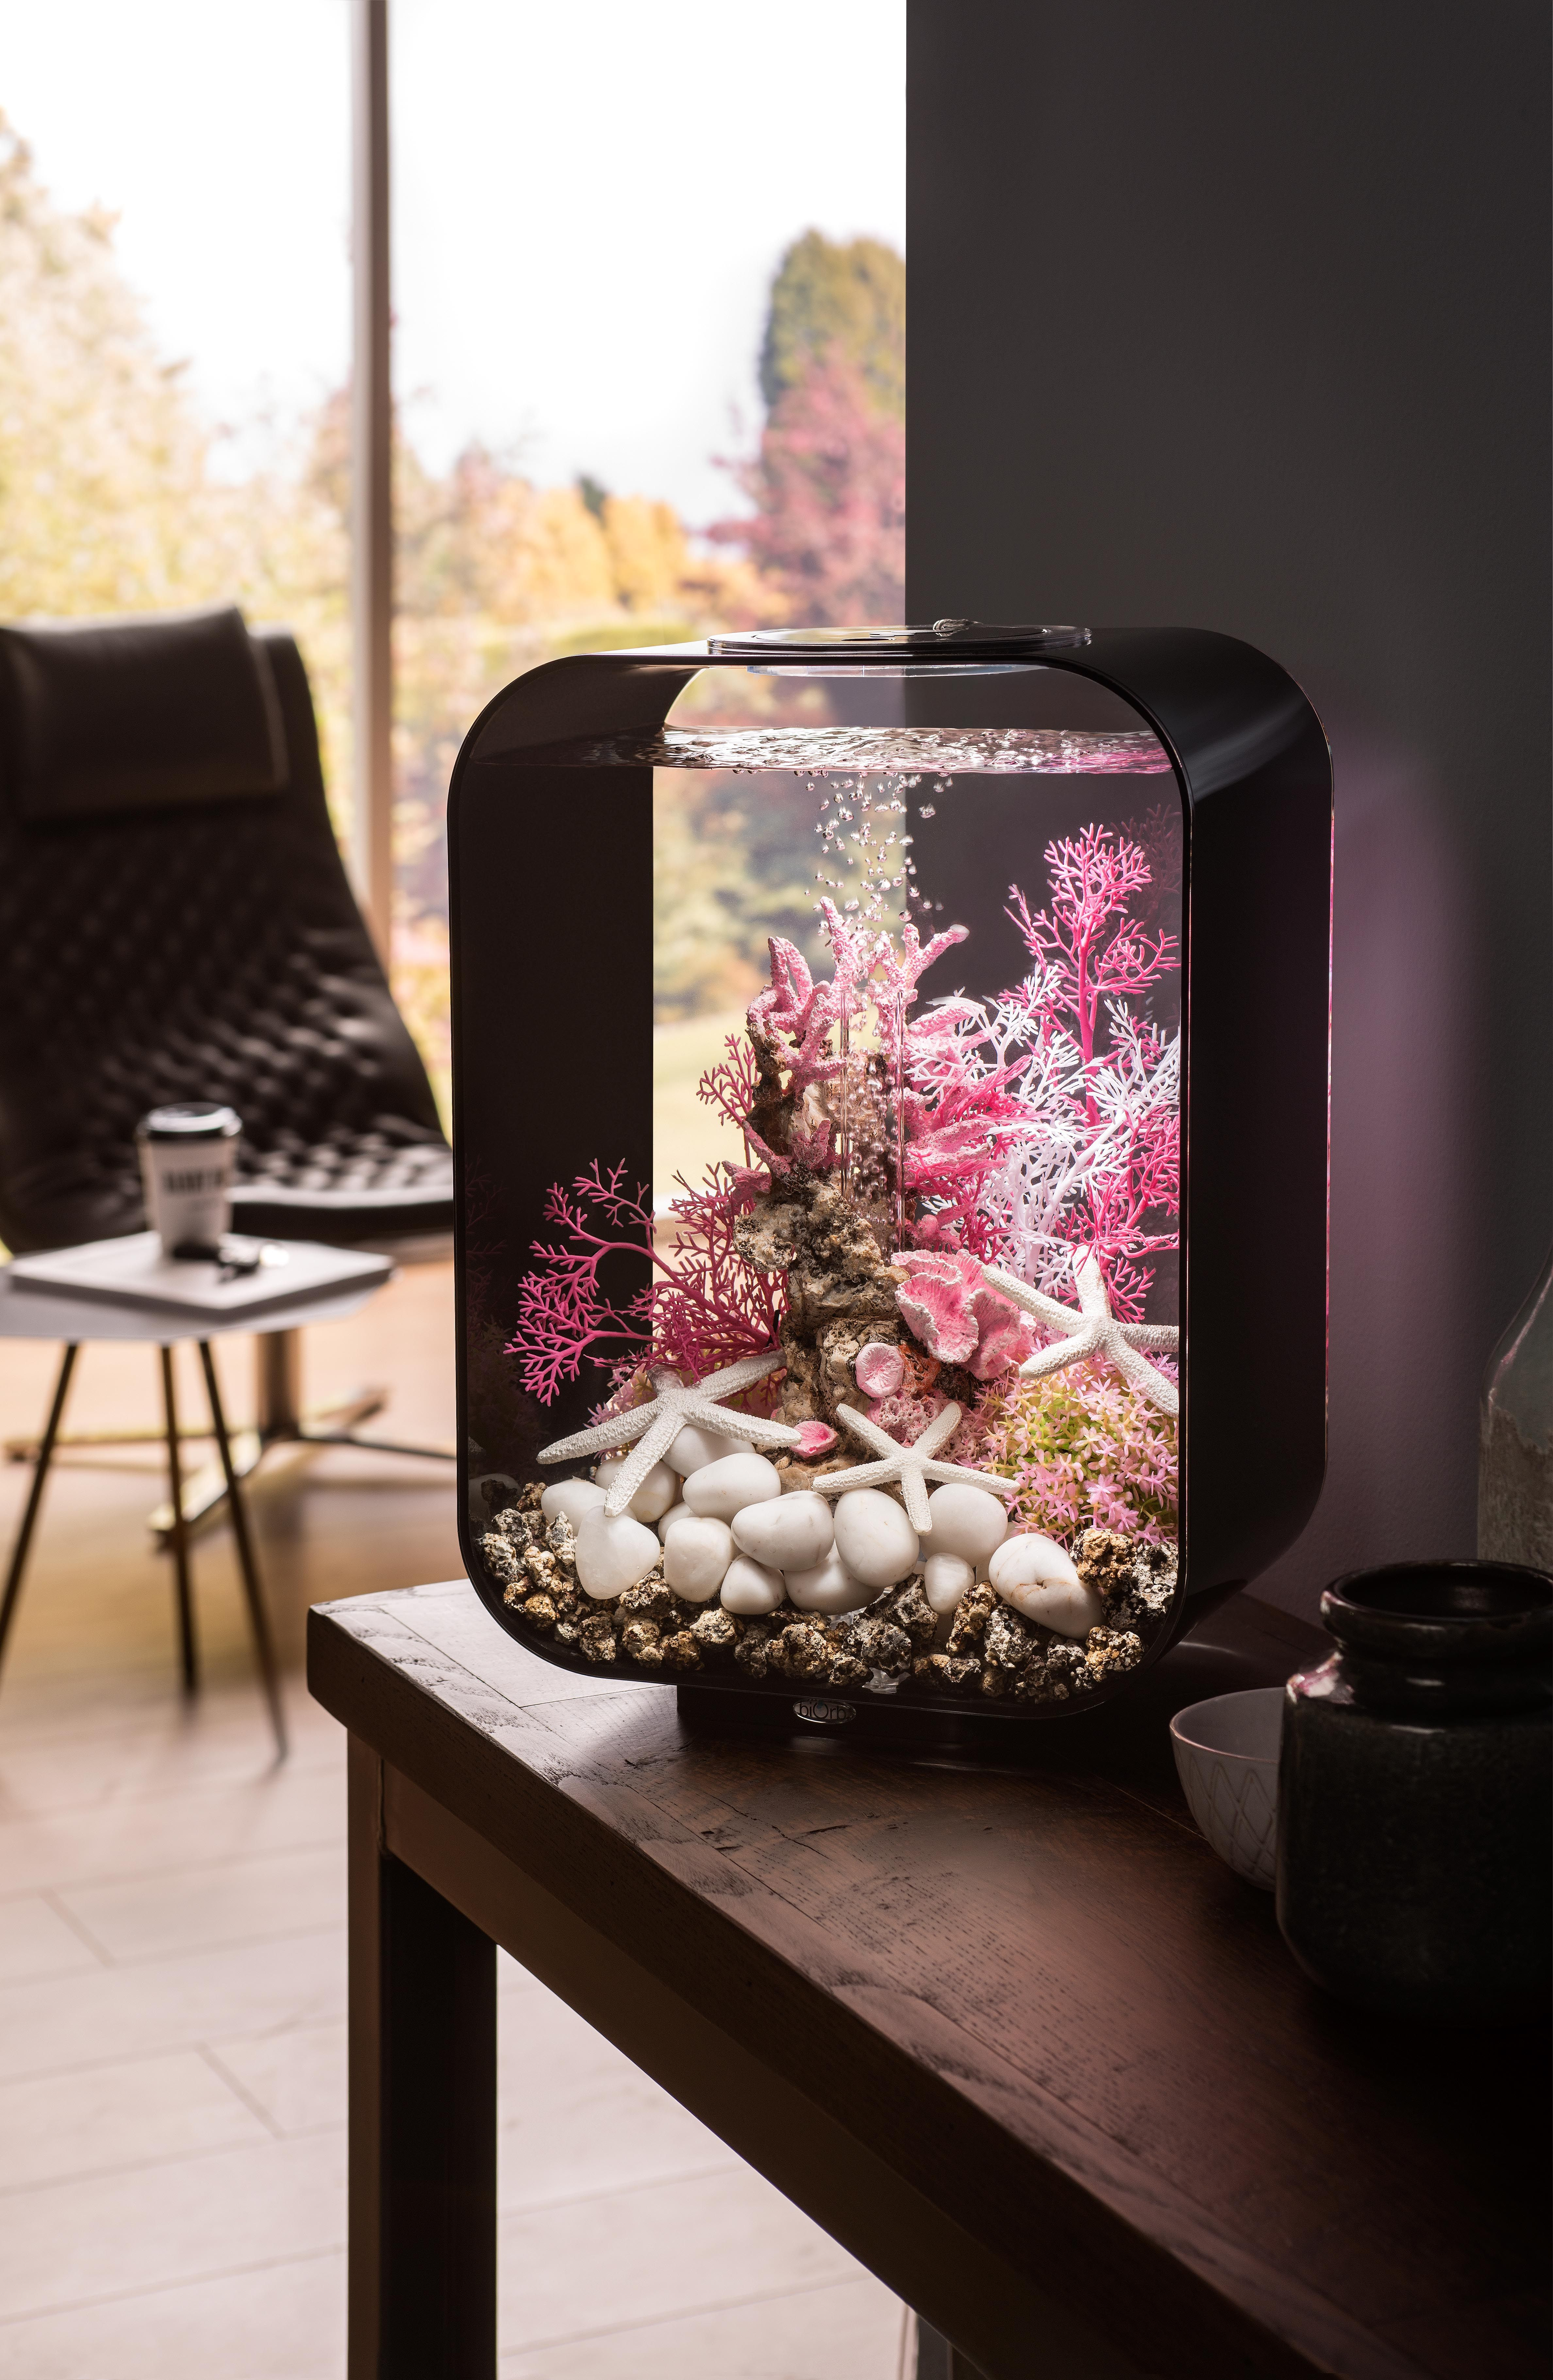 Beautiful Aquariums - biOrb LIFE 15 Acrylic Aquarium. 4 US Gallons. Easy maintenance, fantastic design!